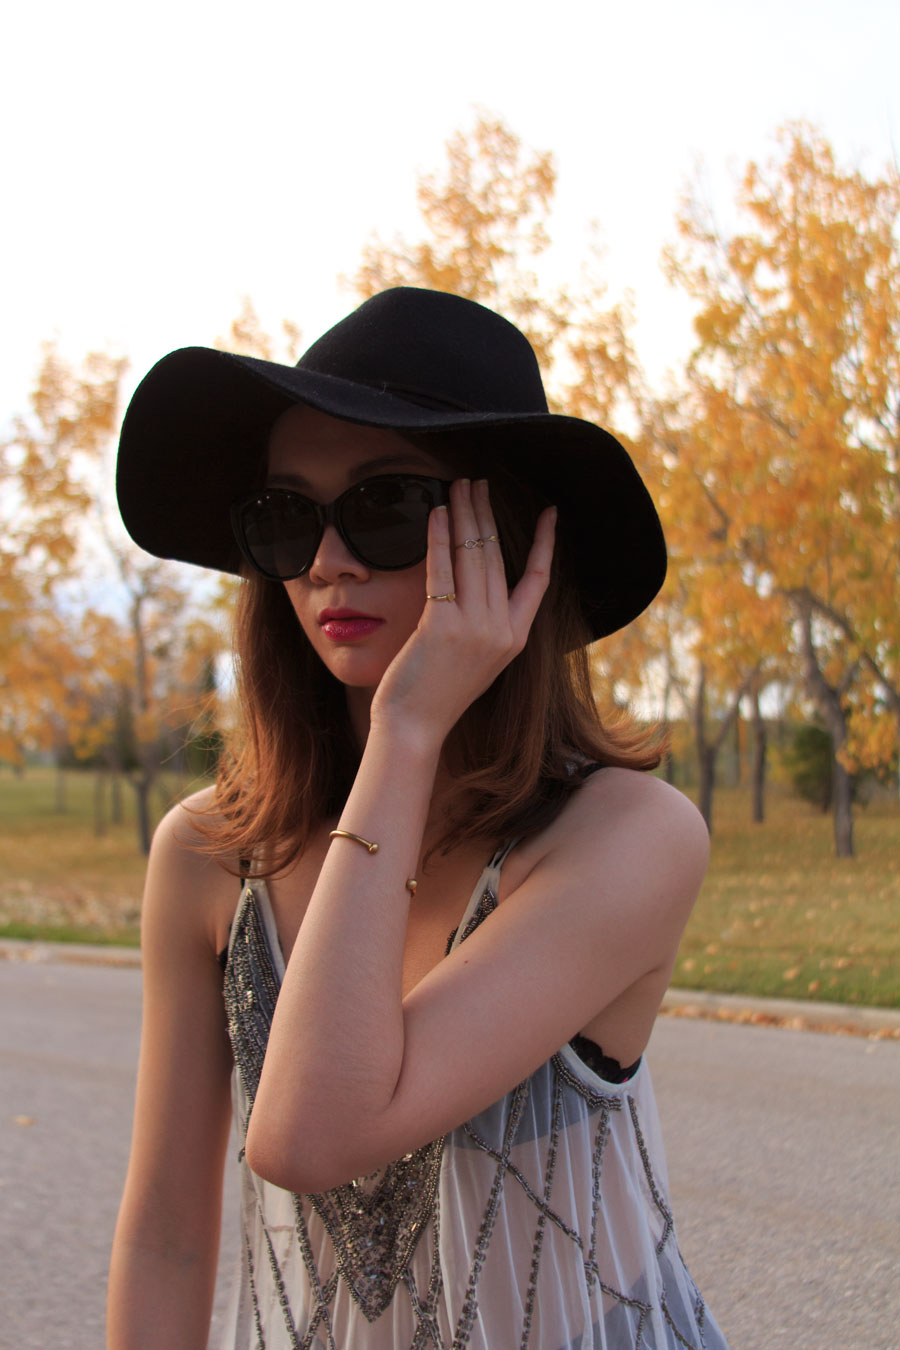 Revlon Lollipop, purple lips, felt hat, autumn fashion, fall fashion, leather pants, sheer top, cat eye sunglasses, charles philip shanghai loafers